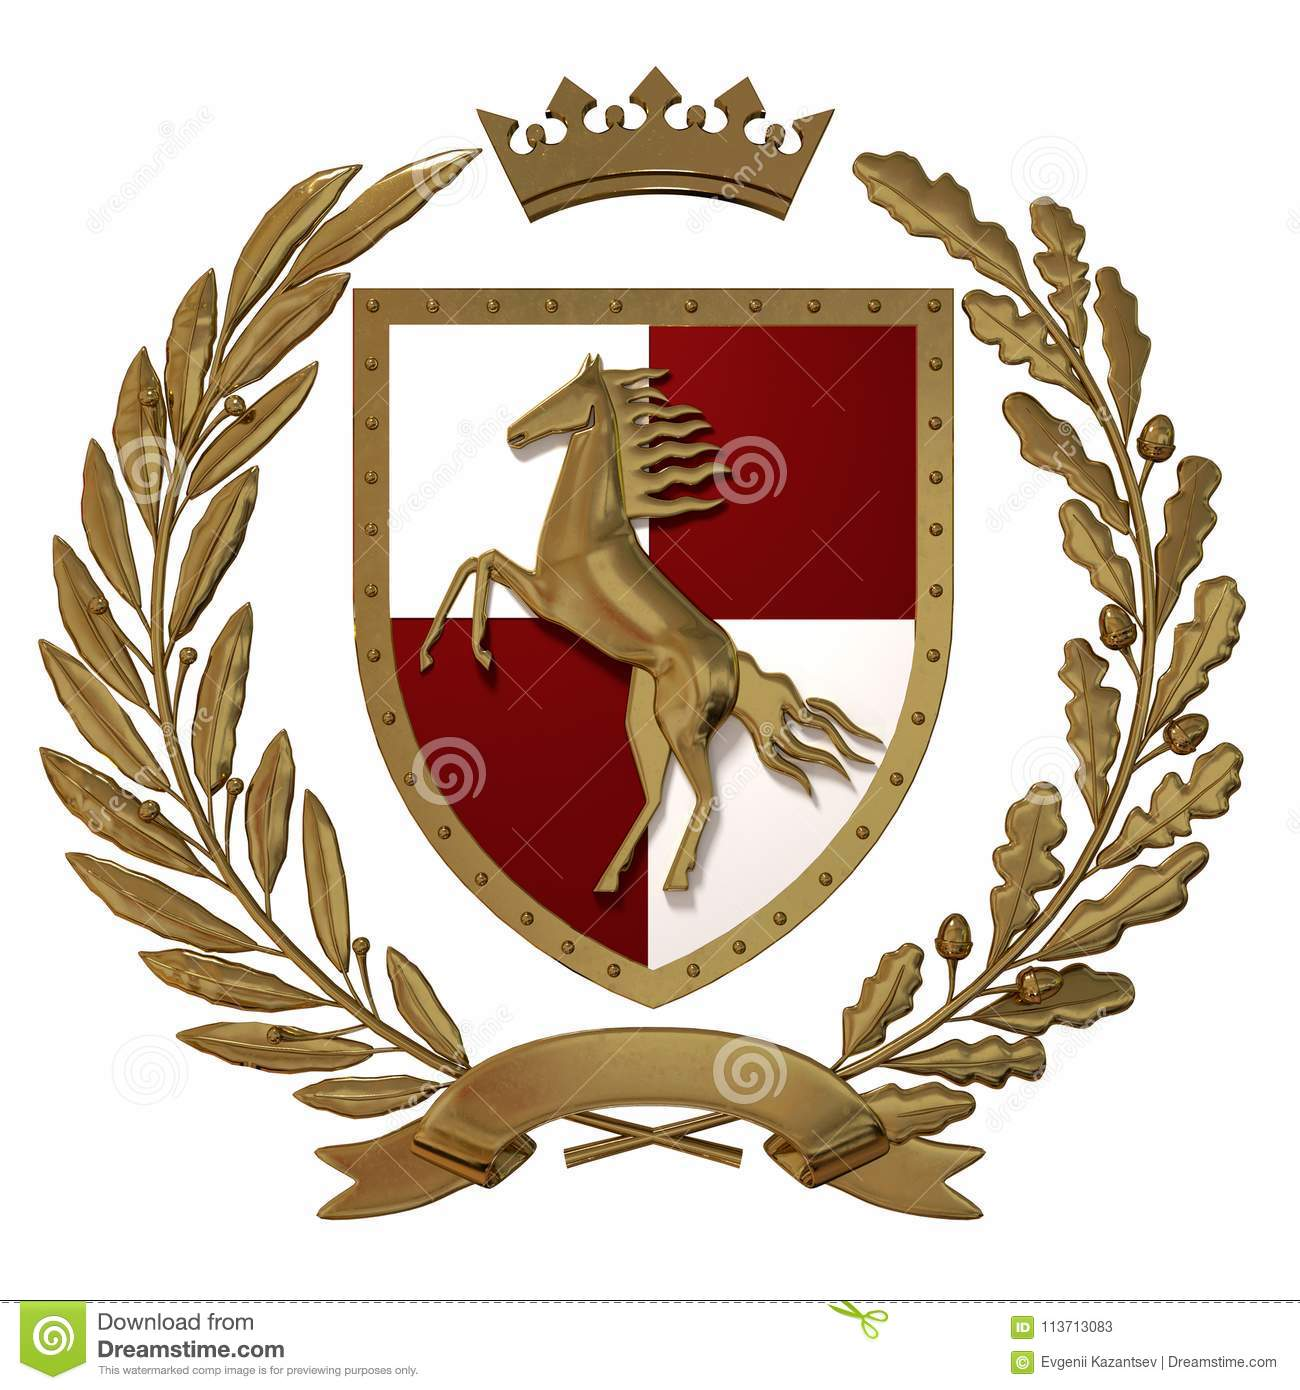 symbols coat of arms and horse racing